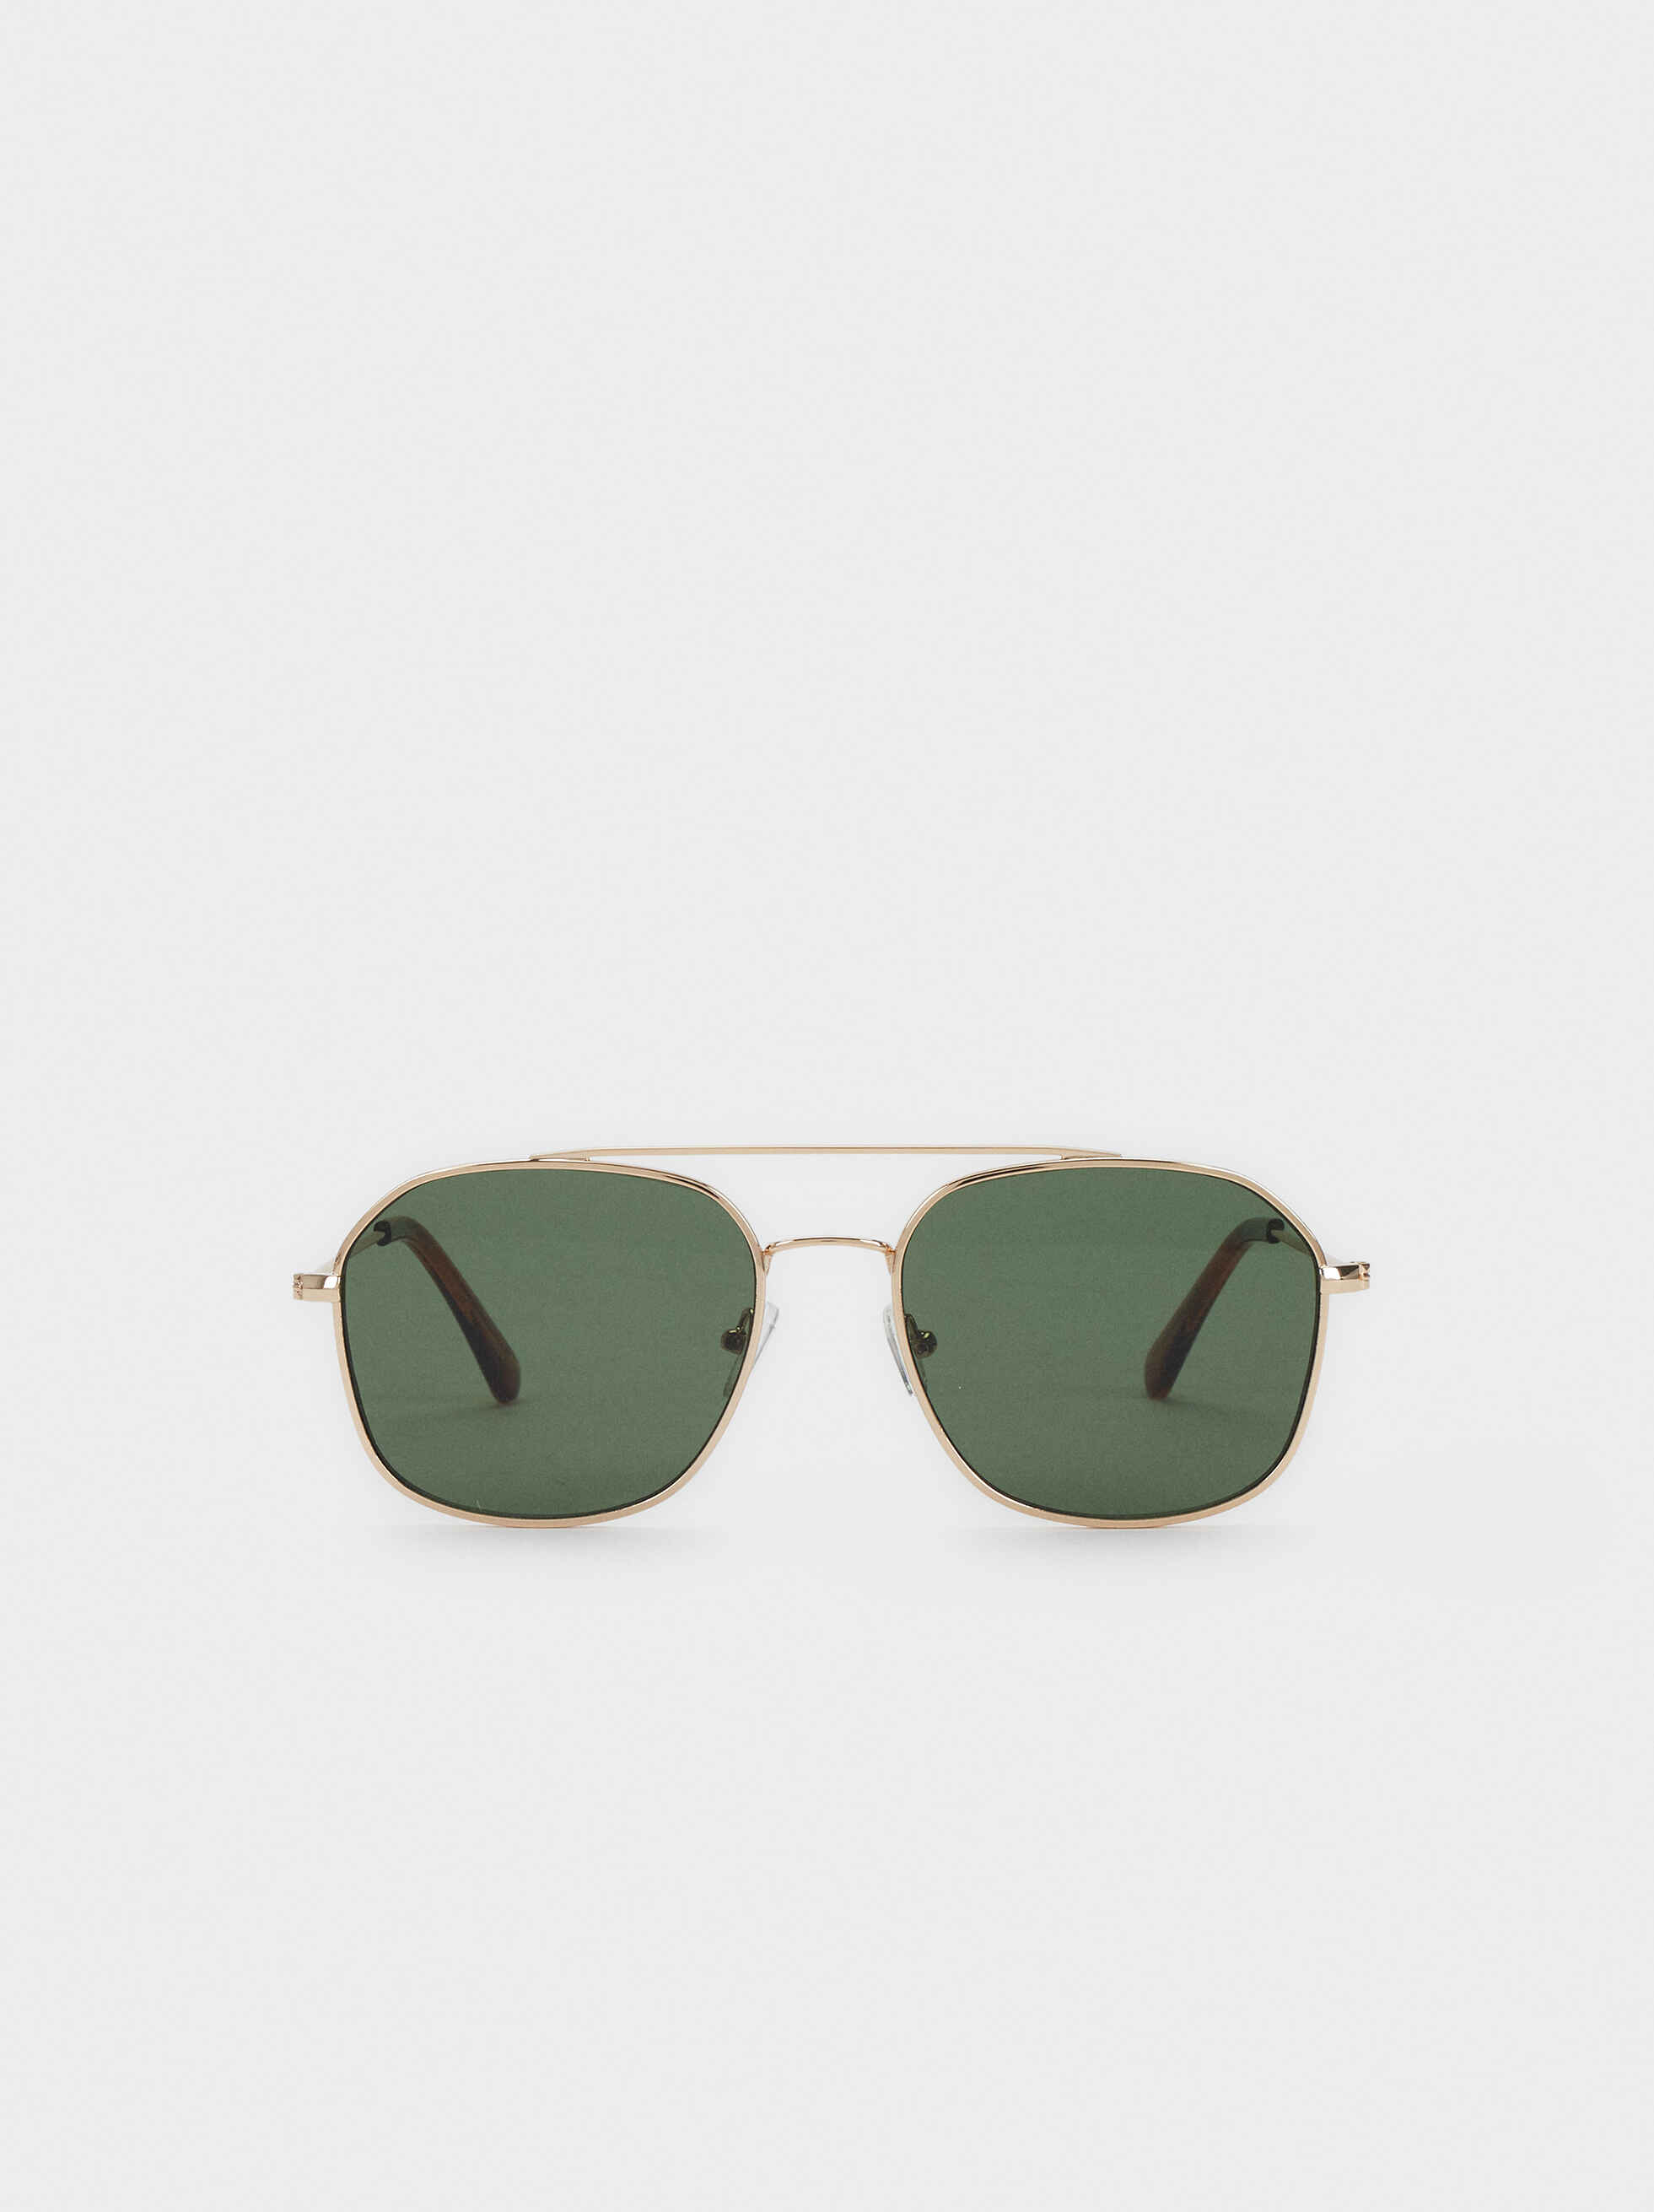 Aviator Sunglasses, Golden, hi-res